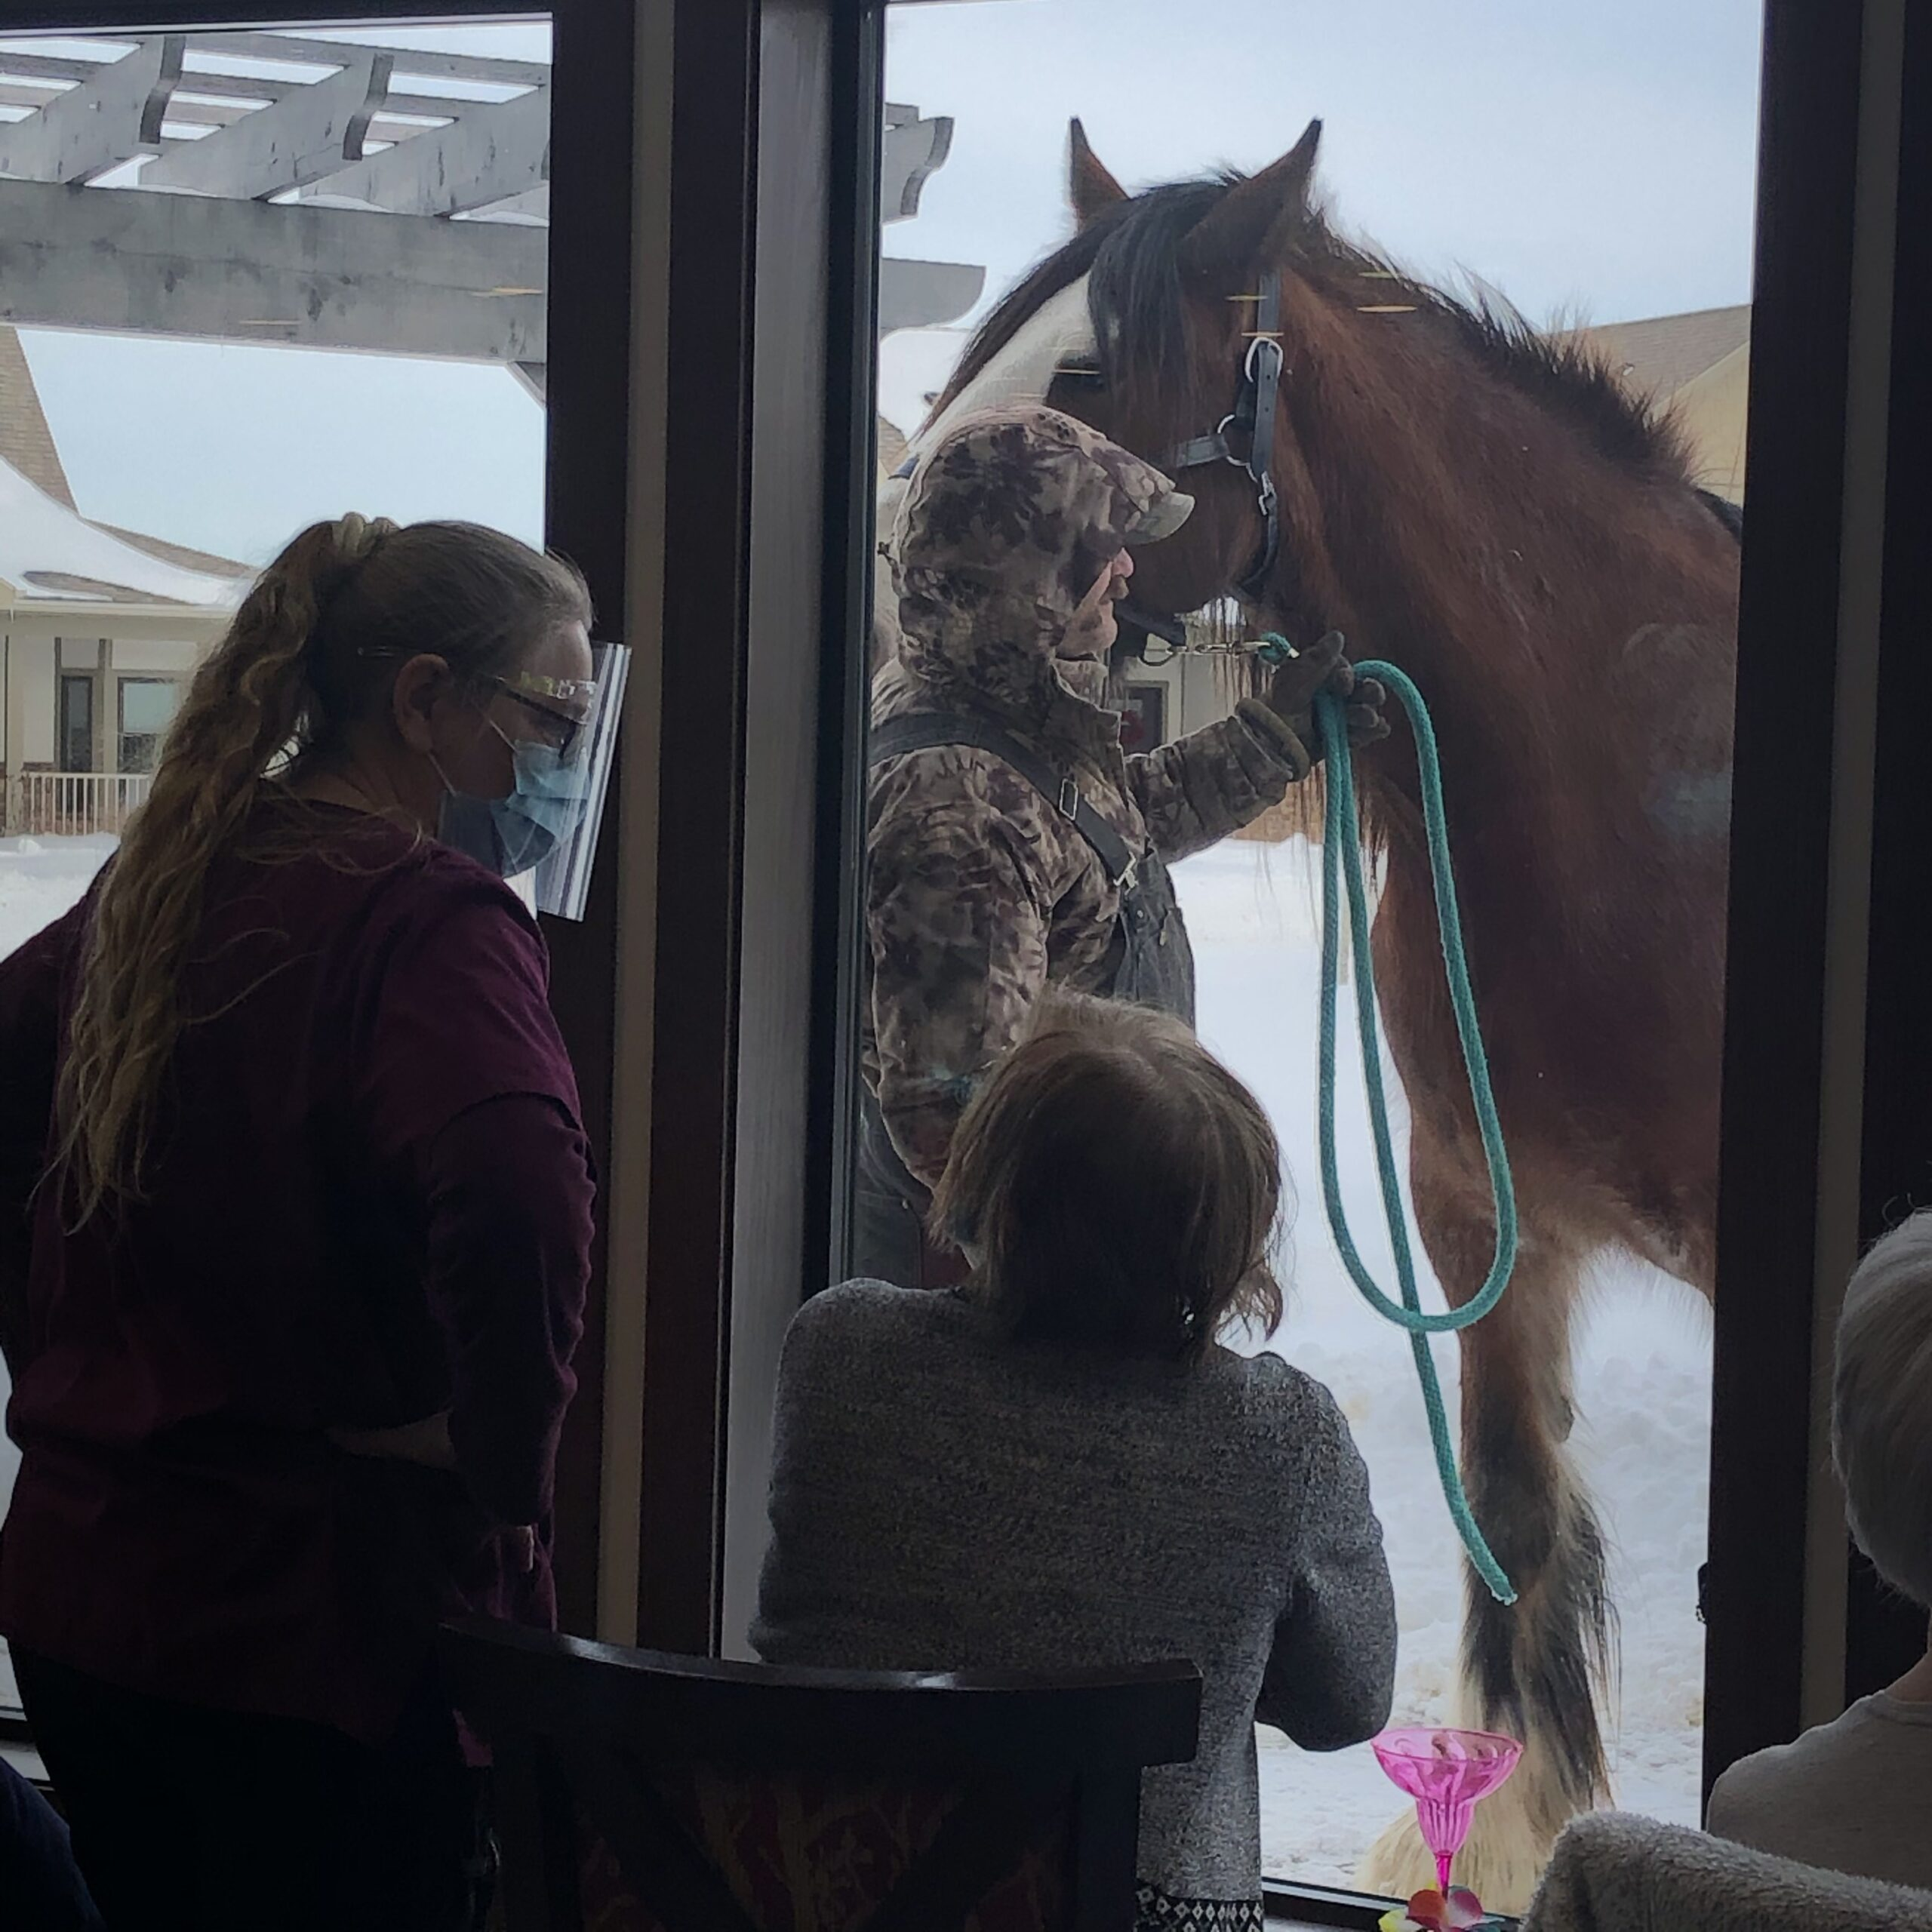 we loved see the Clydesdale